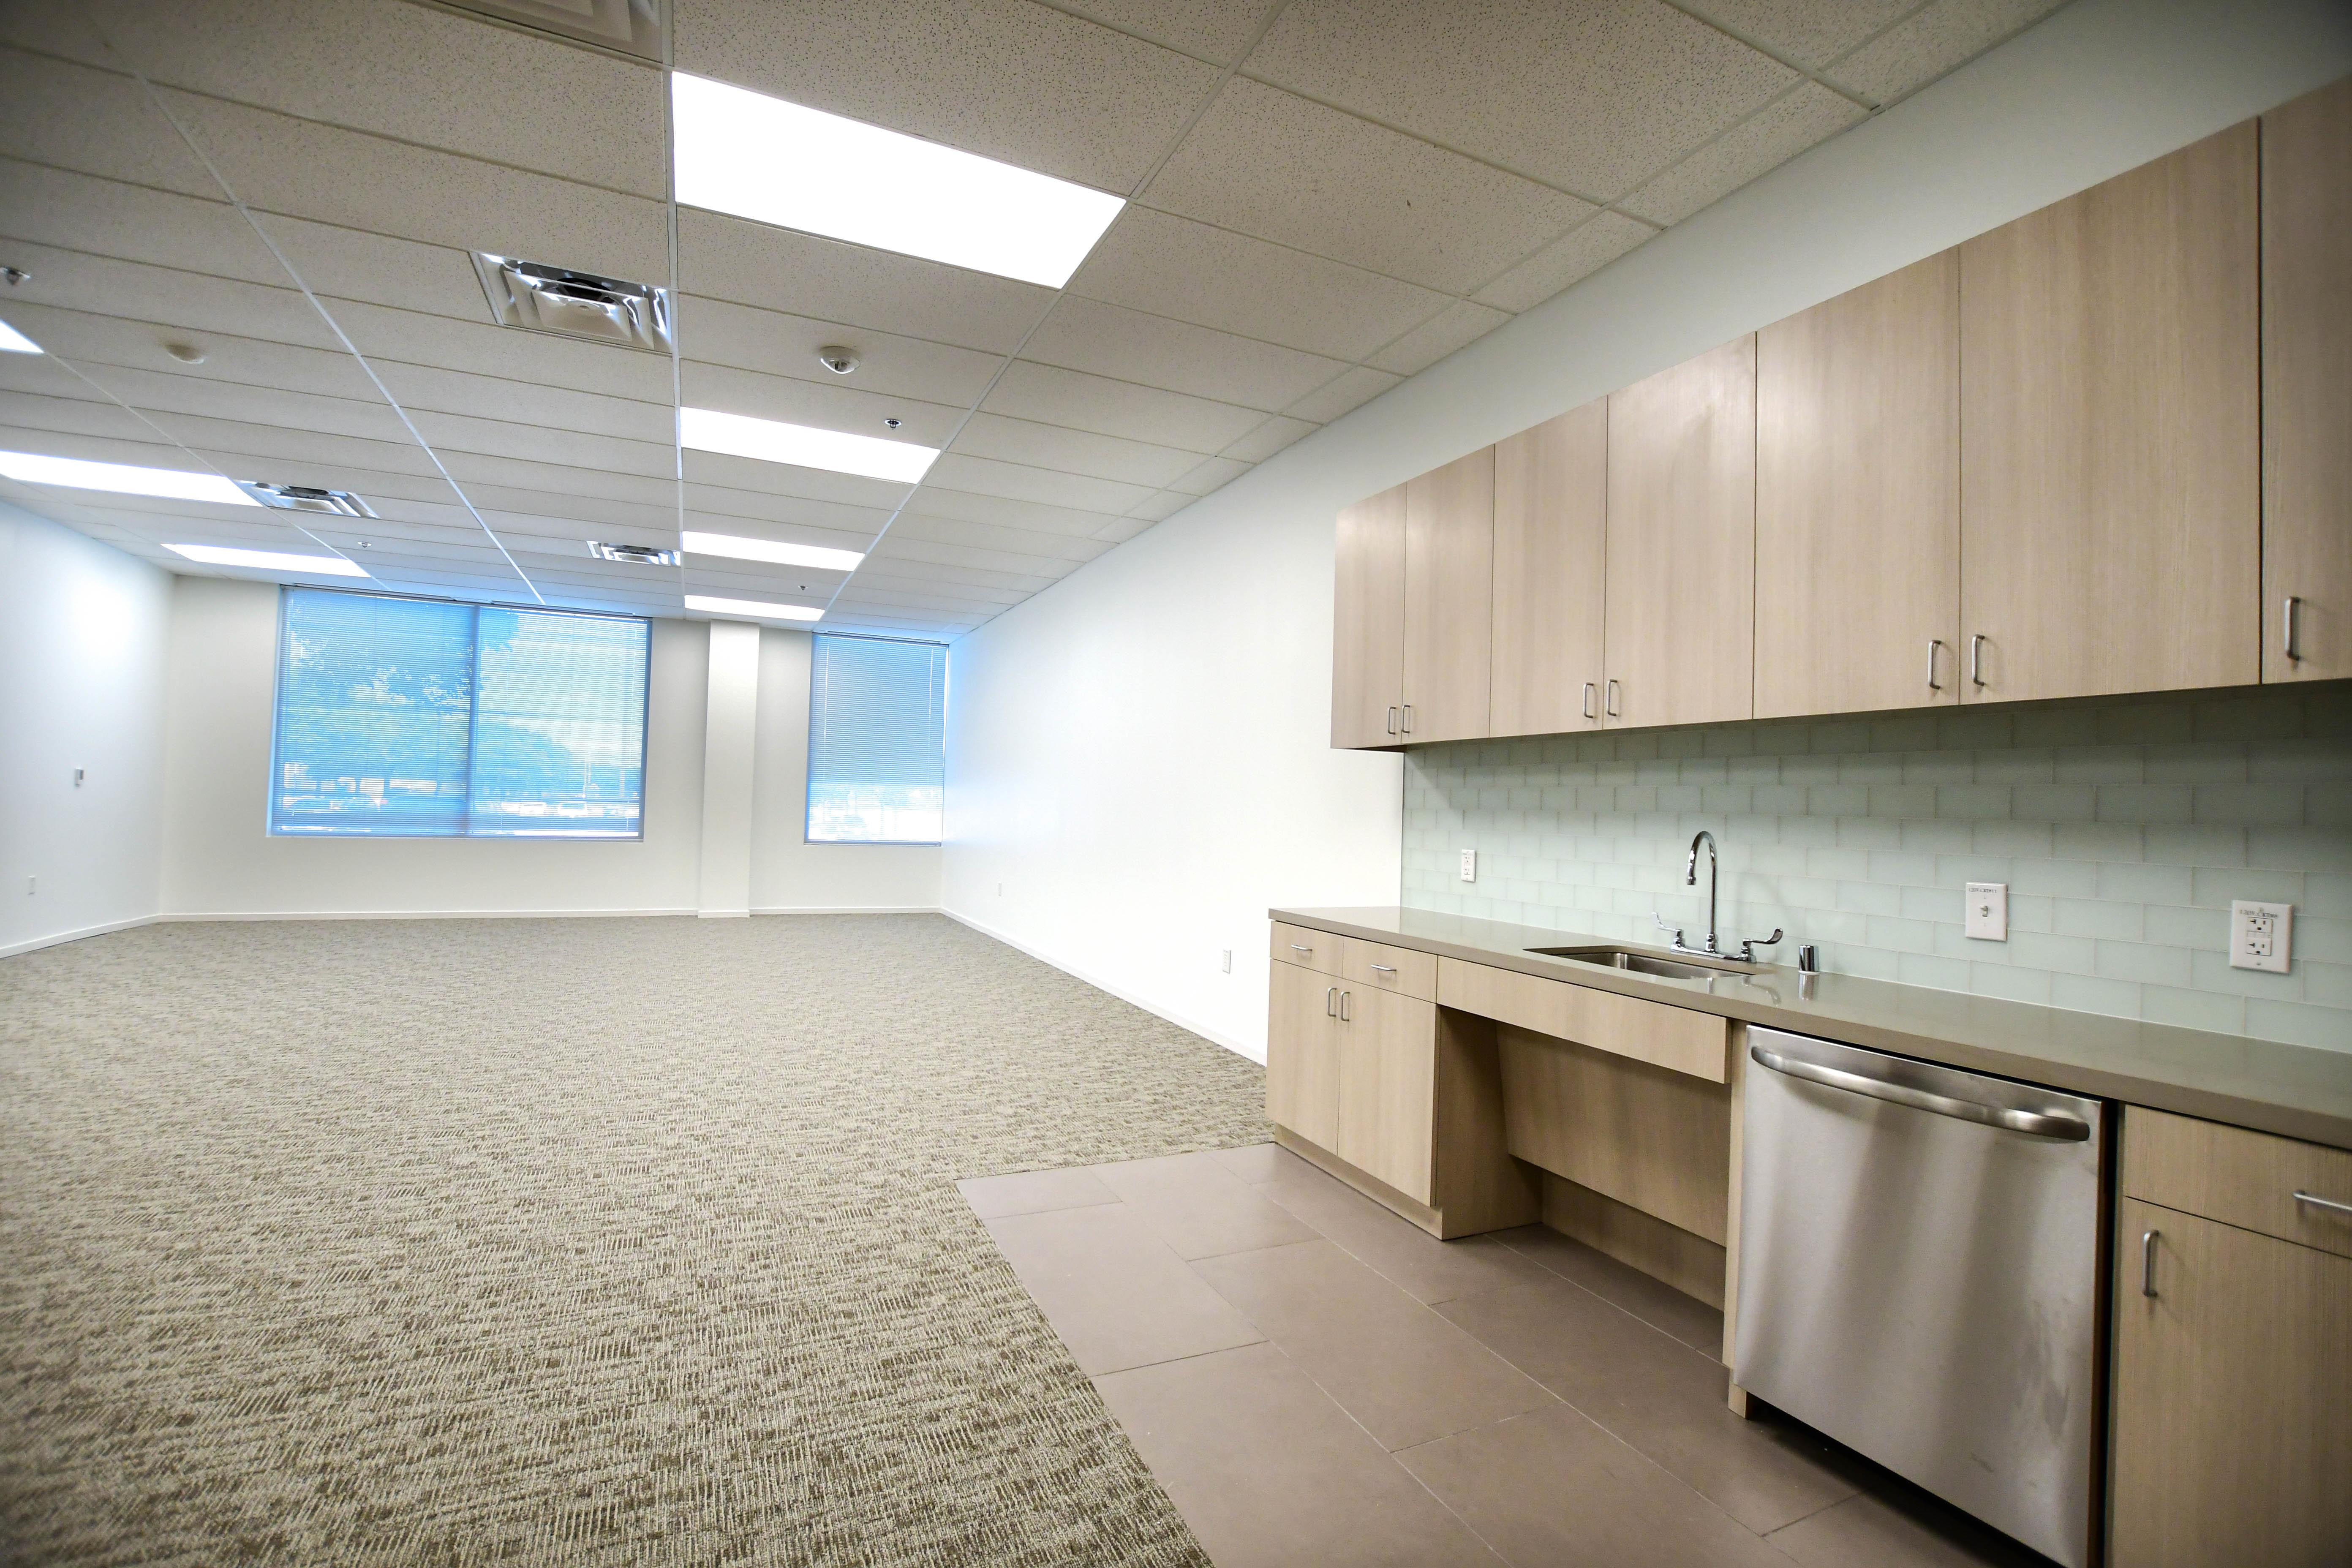 Billingsley | 4100 Midway Road - Spec Suite | Suite 1155